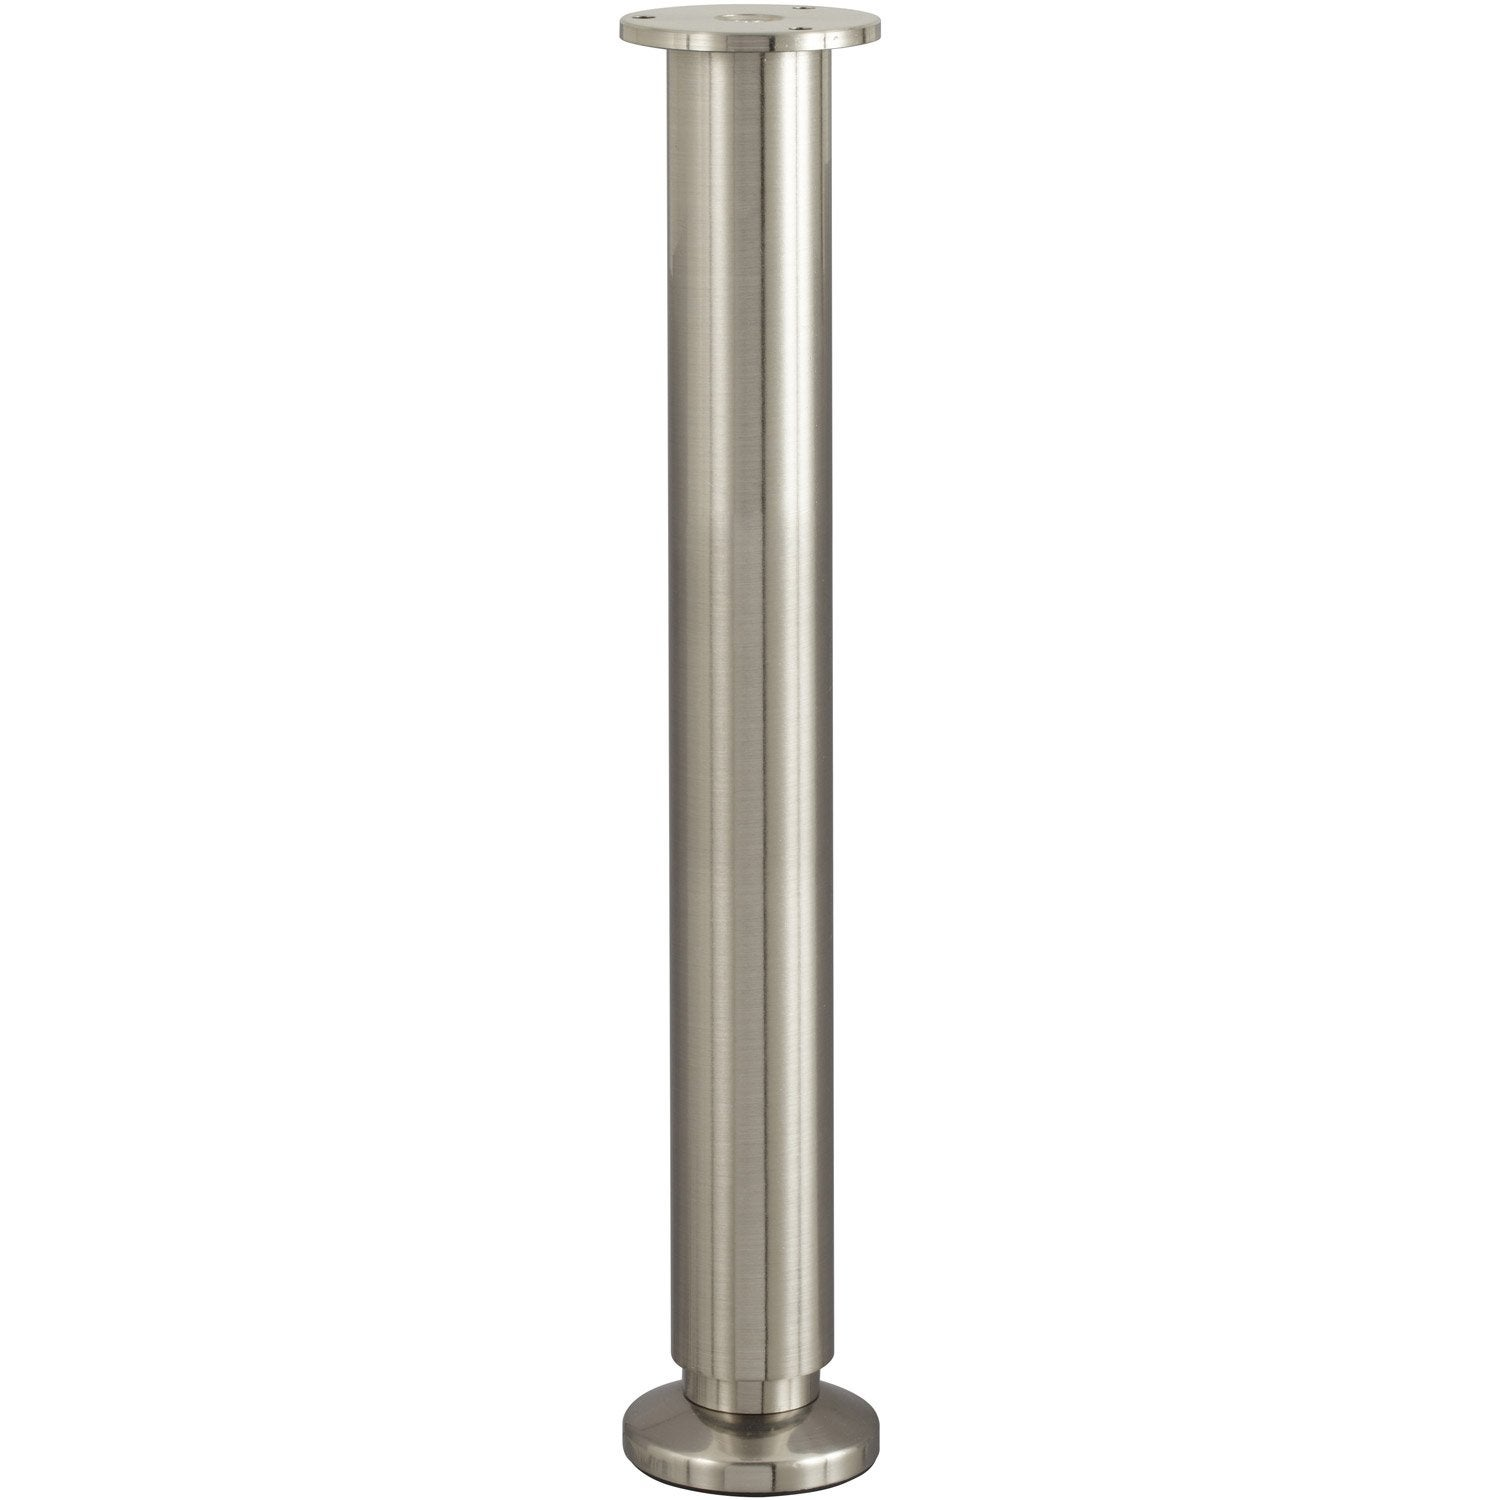 Pied de meuble cylindrique r glable en aluminium chrom gris 35cmx38mm leroy merlin for Produit anti punaise de lit leroy merlin